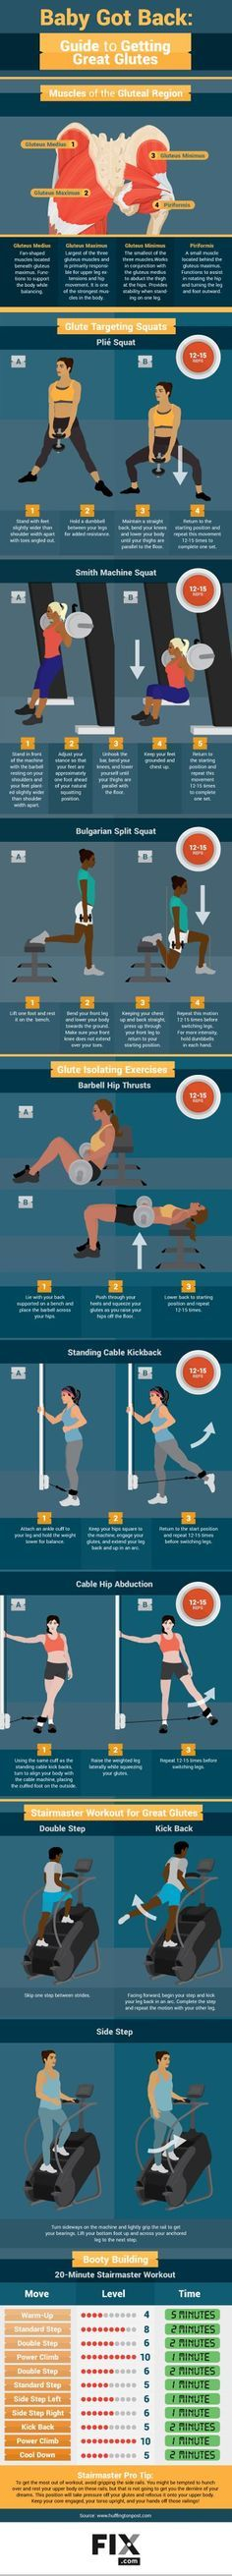 Tone your butt with our glute workout routine! It includes squats, strength training, and a cardio Stairmaster workout to cap it all off.